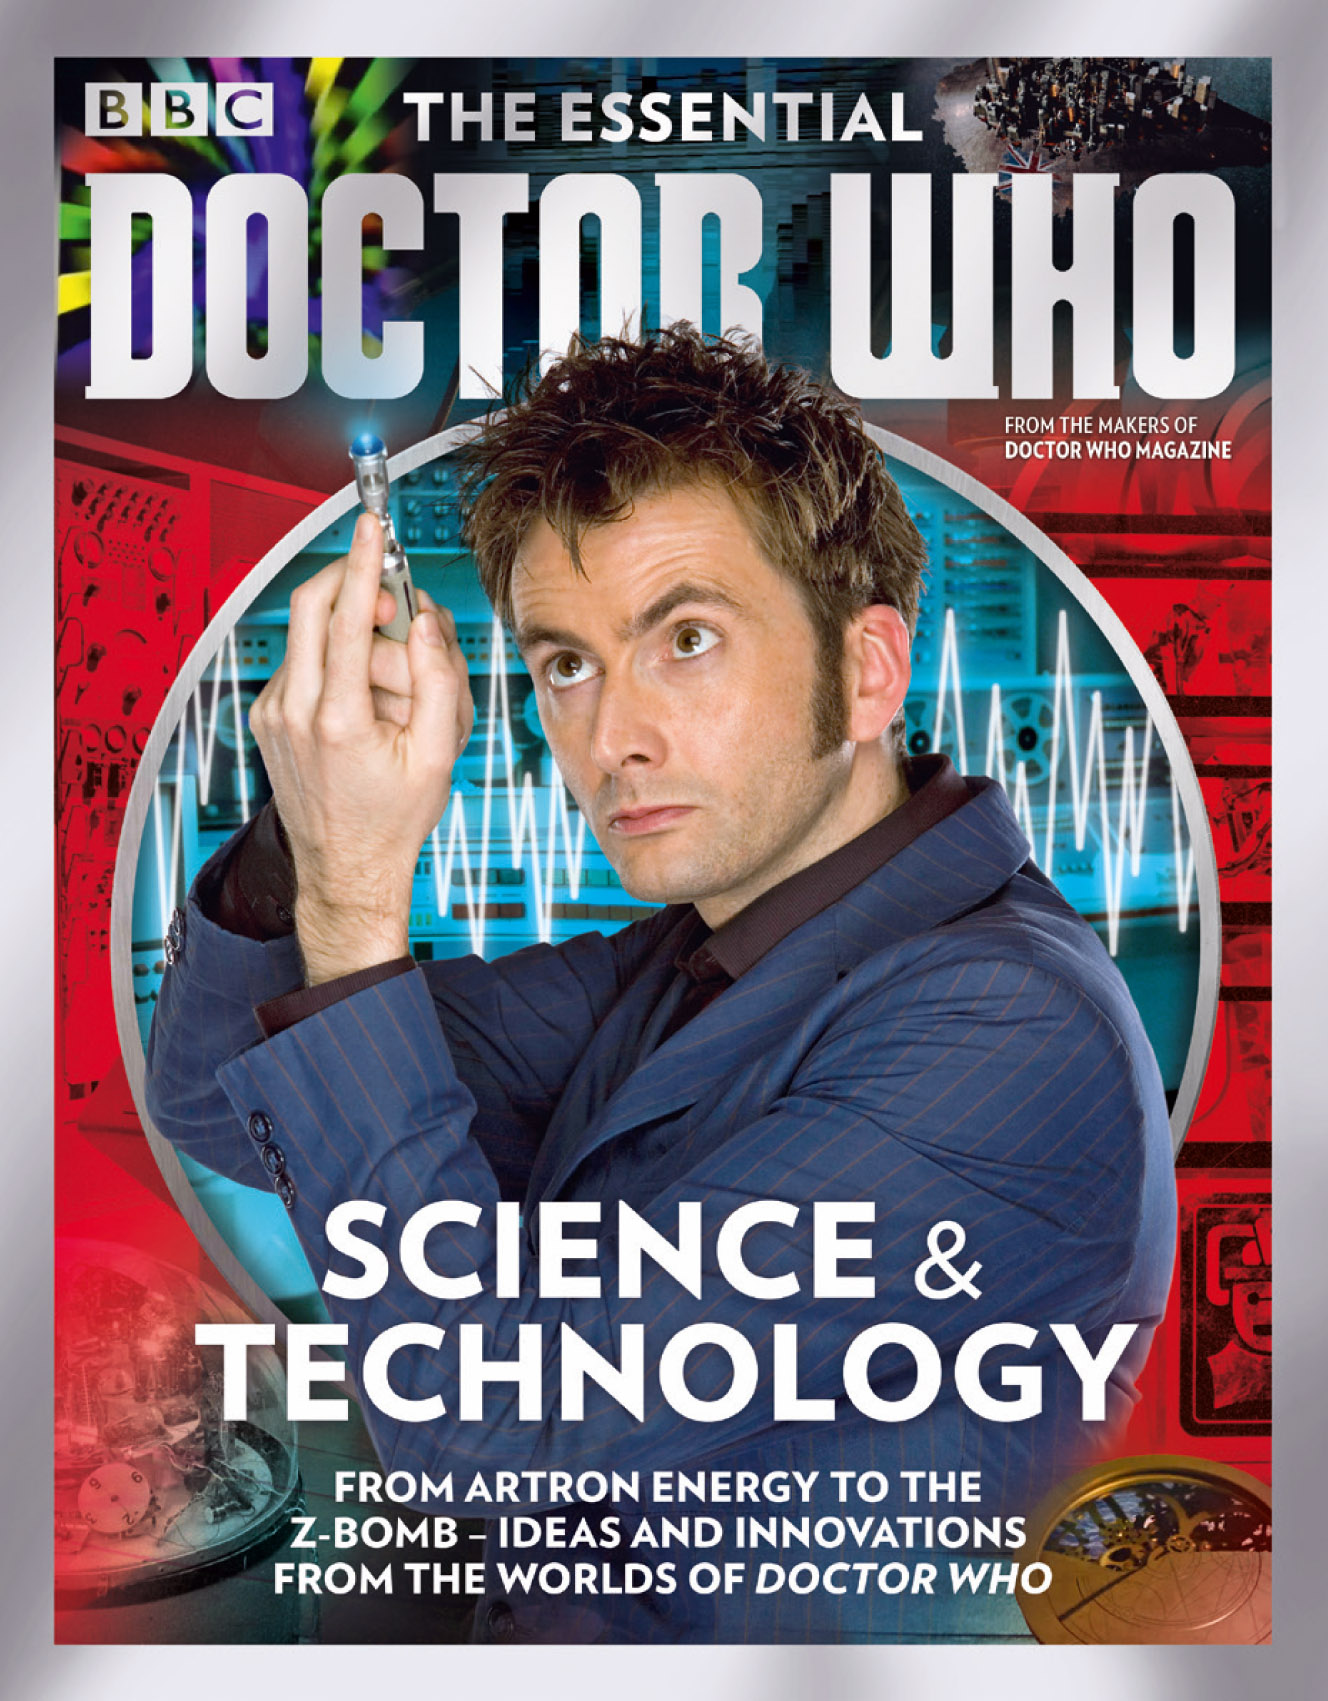 The Essential Doctor Who: Science and Technology (Credit: Panini)